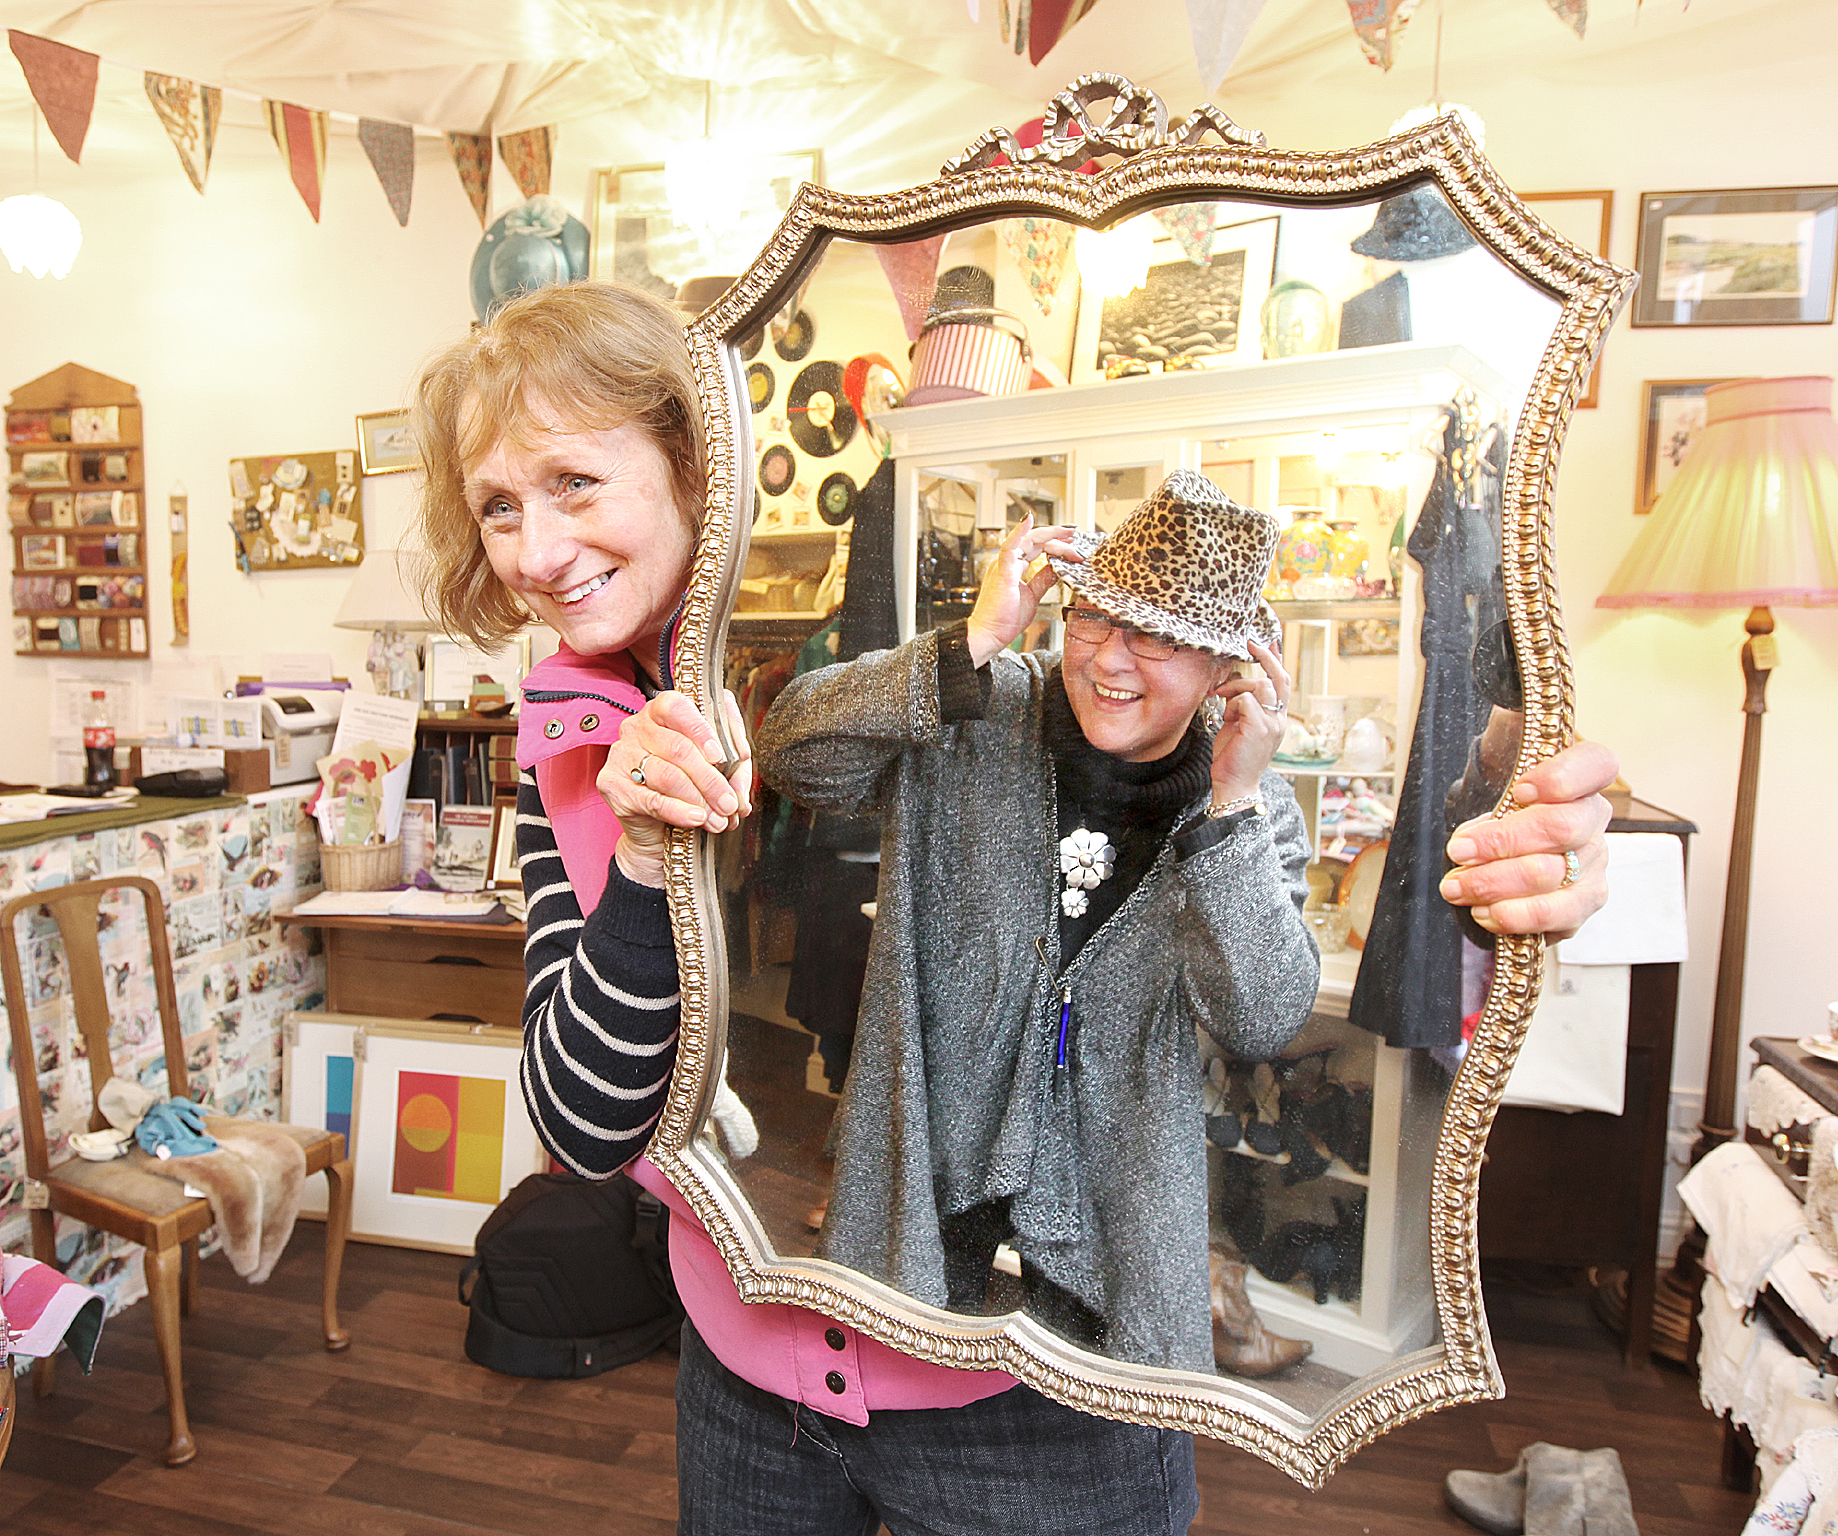 Skipton charity shop Birdcage in the running for micro-enterprise award